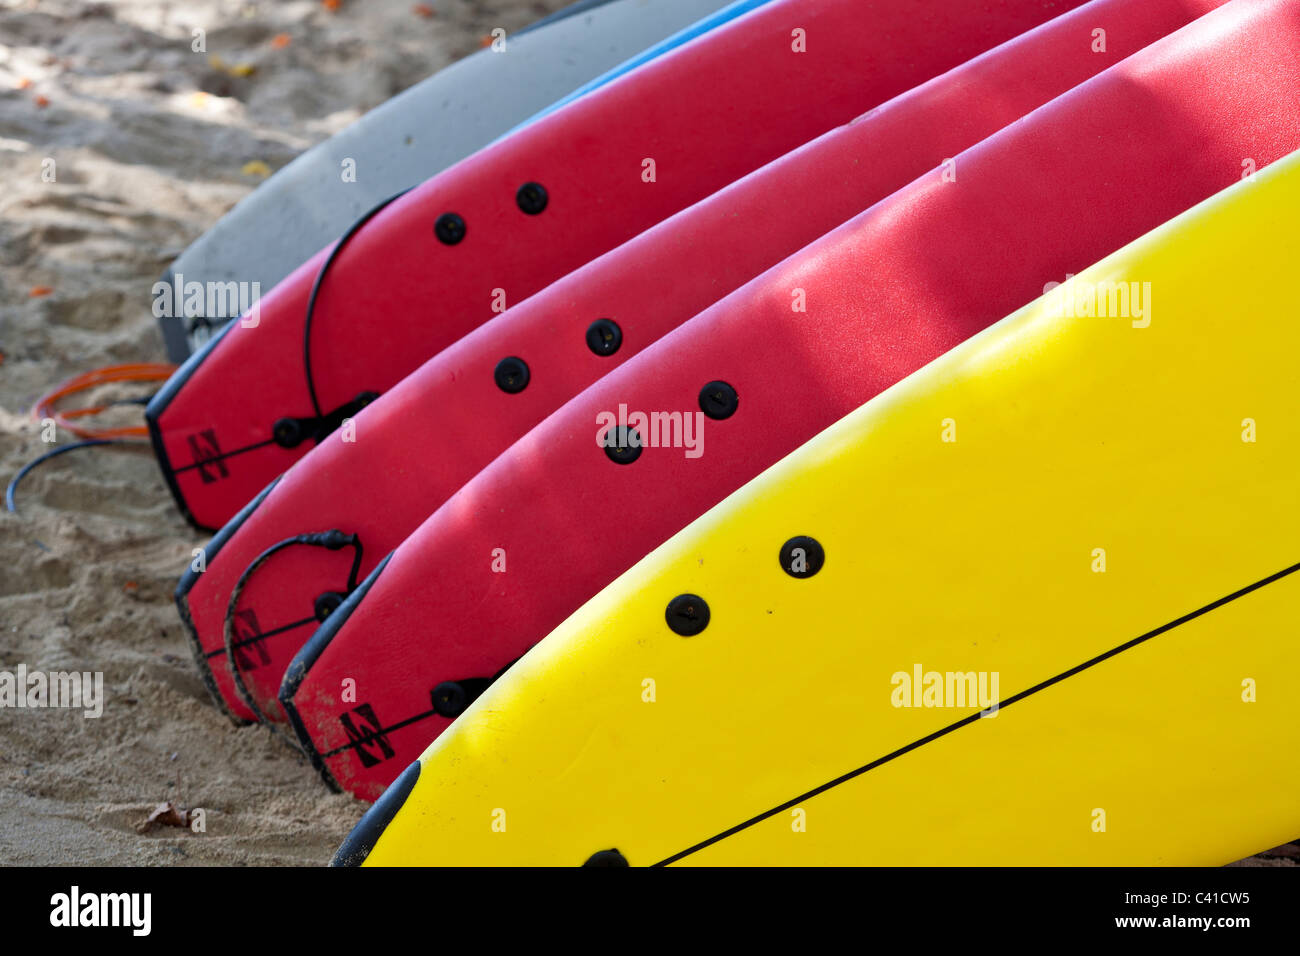 Ready for the Surf: Rental surfboards stacked on Waikiki beach. A collection of red and yellow surfboards await - Stock Image